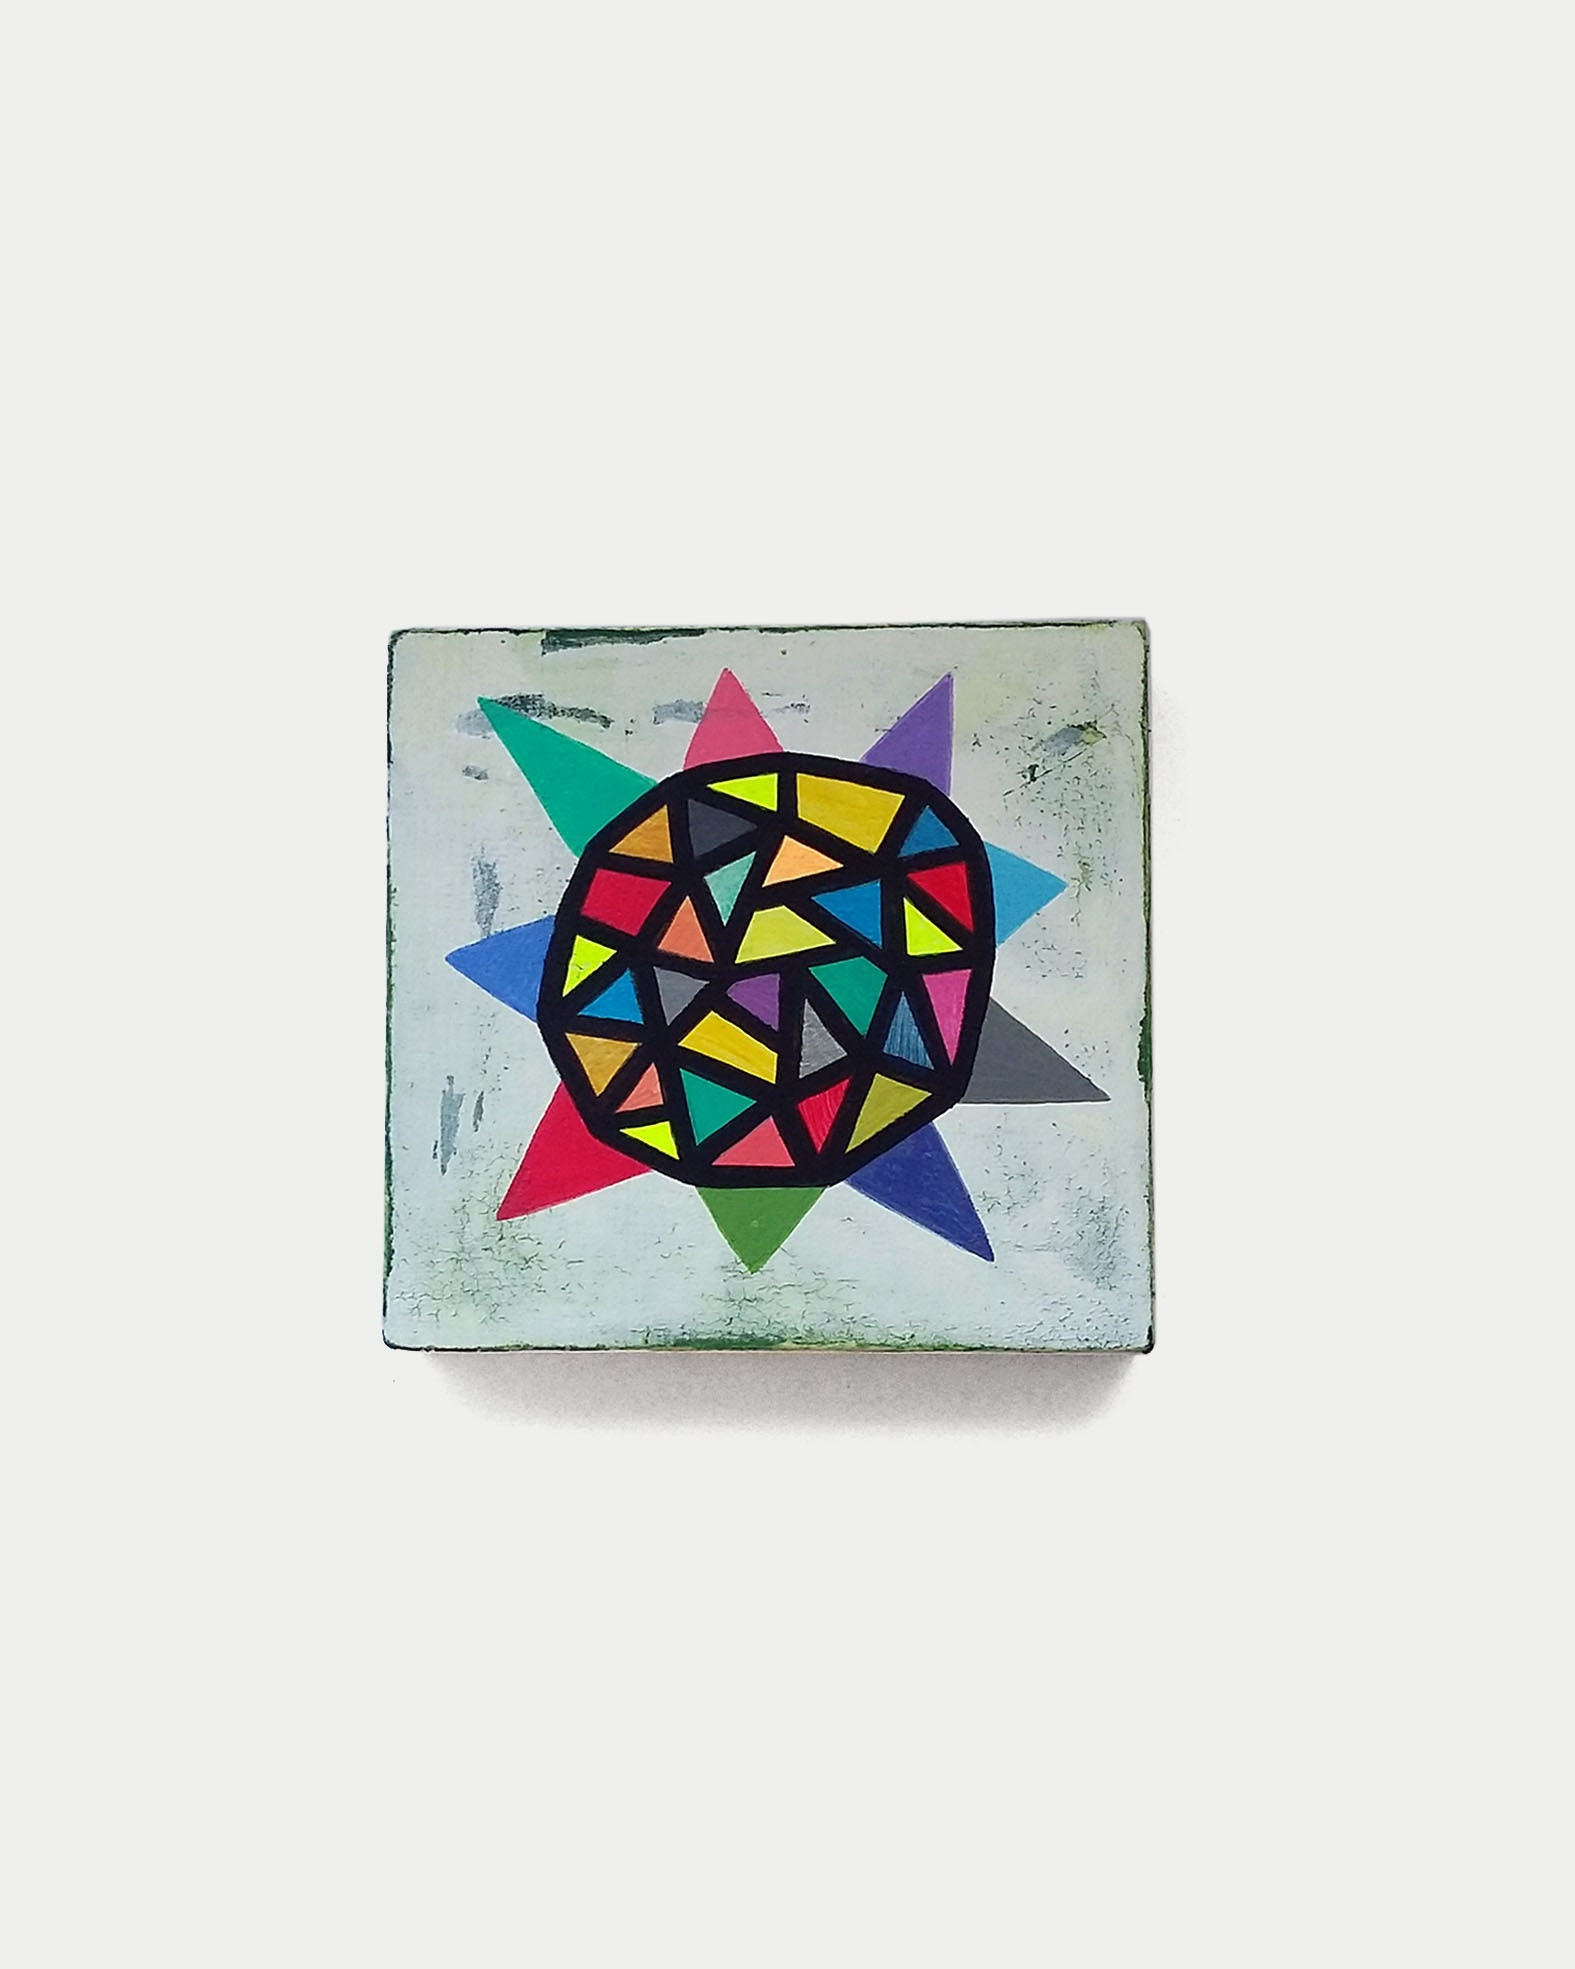 Star_001, original artwork on wood panel - product images  of